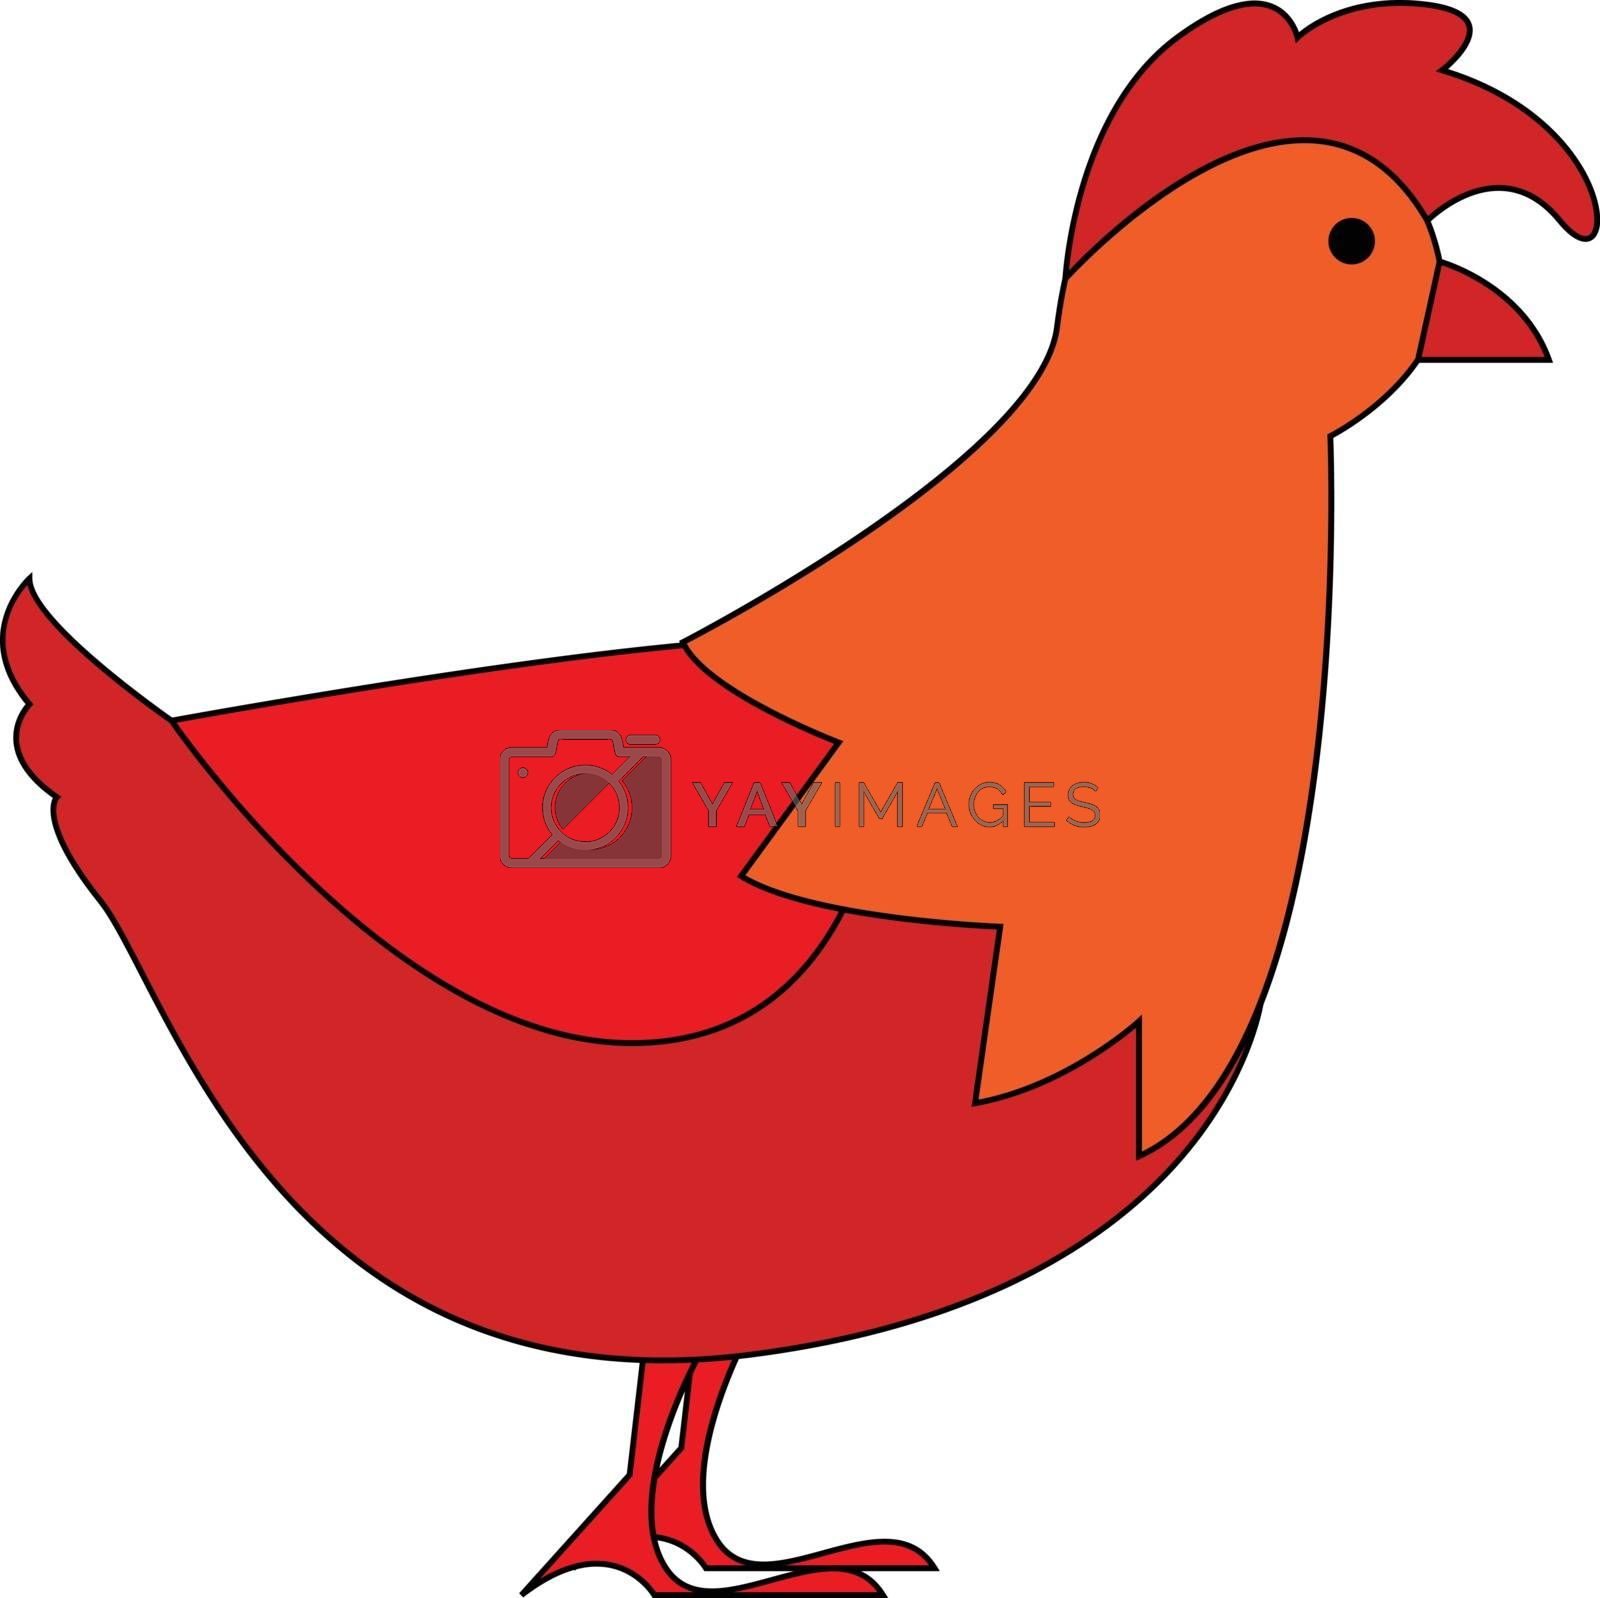 Royalty free image of Red orange hen facing right illustration vector on white backgro by Morphart